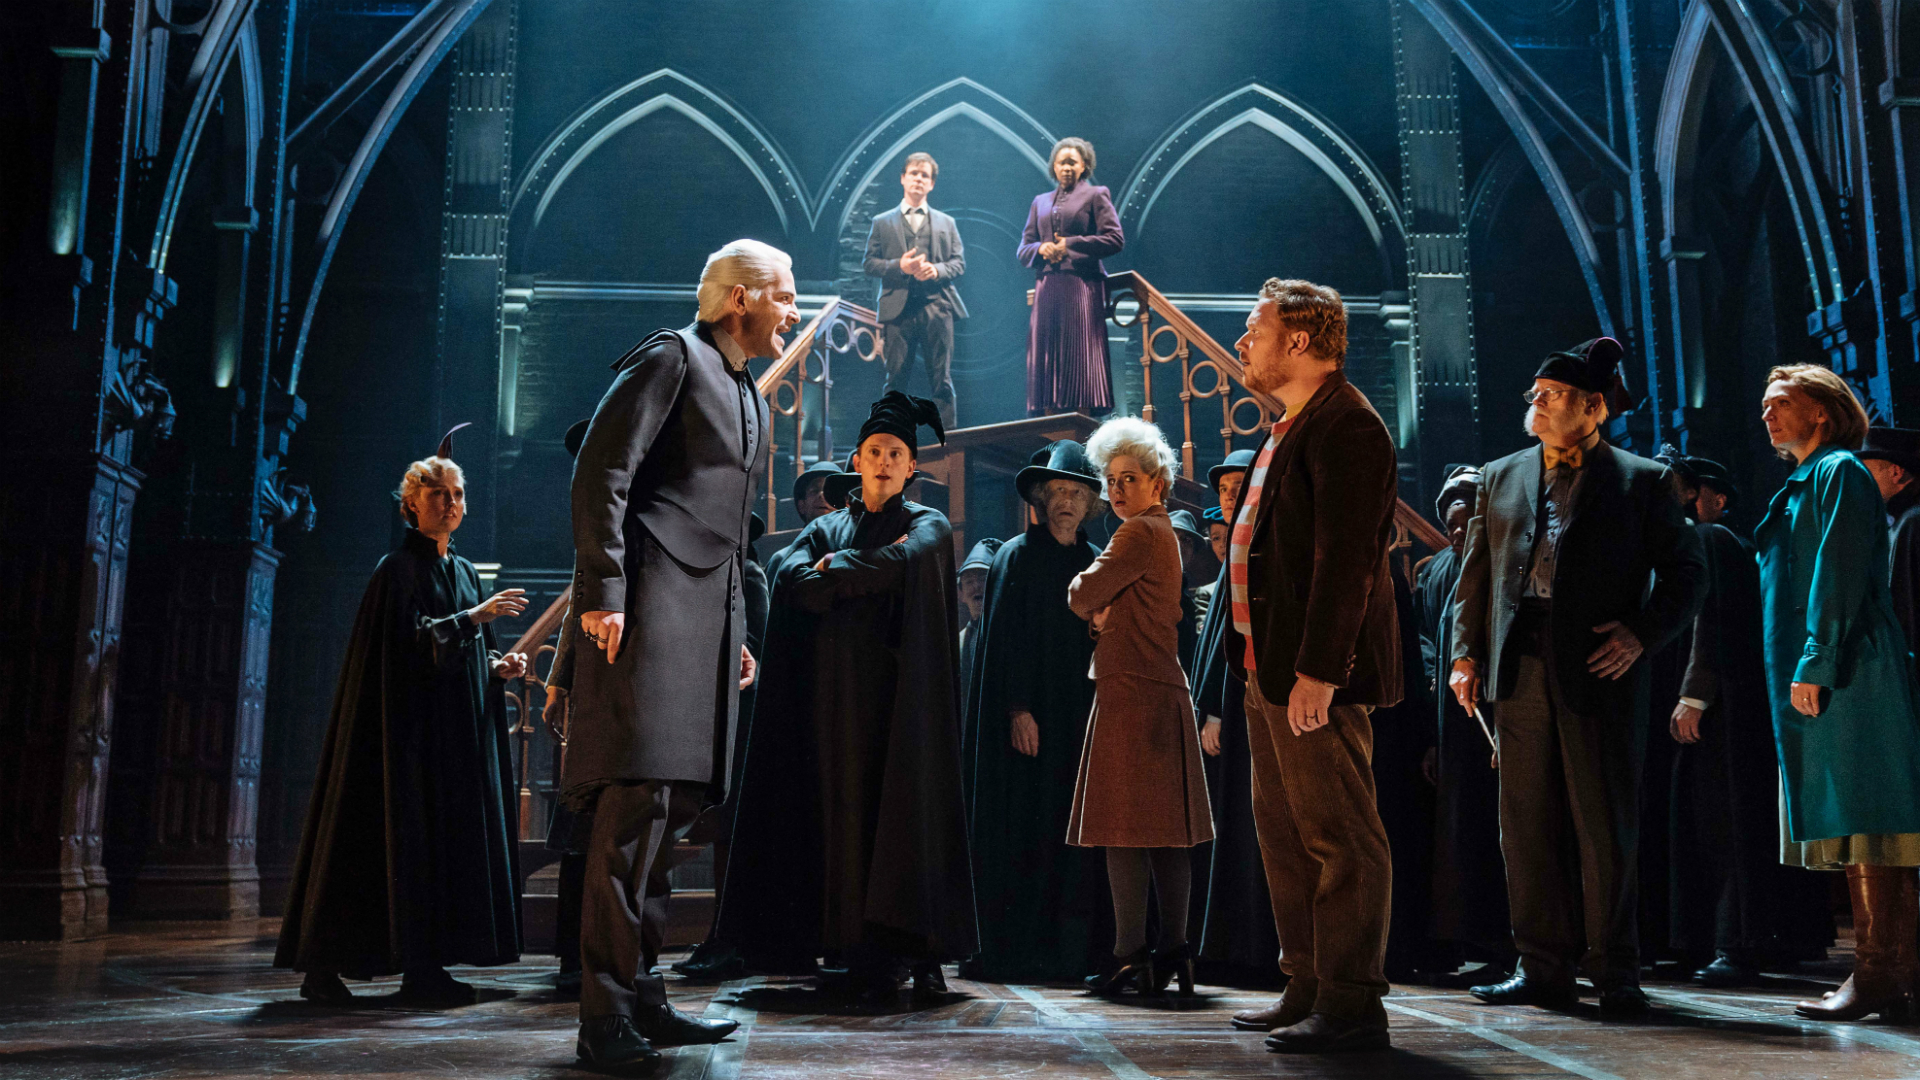 harry potter comes to the londons west end stage kids